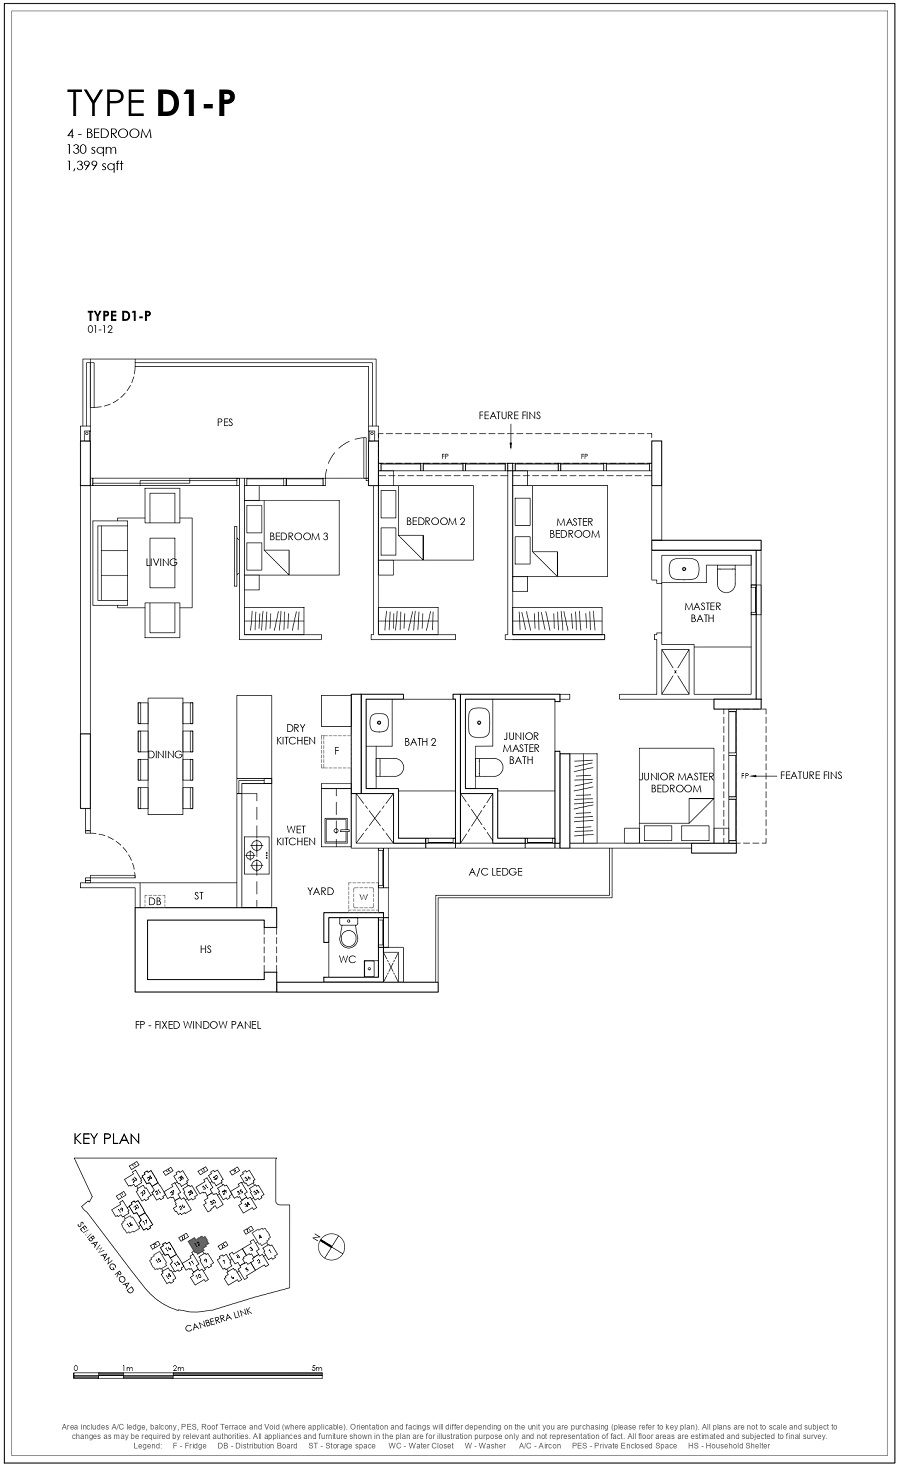 Provence Residence EC 4BR Type D1-P 130_1399